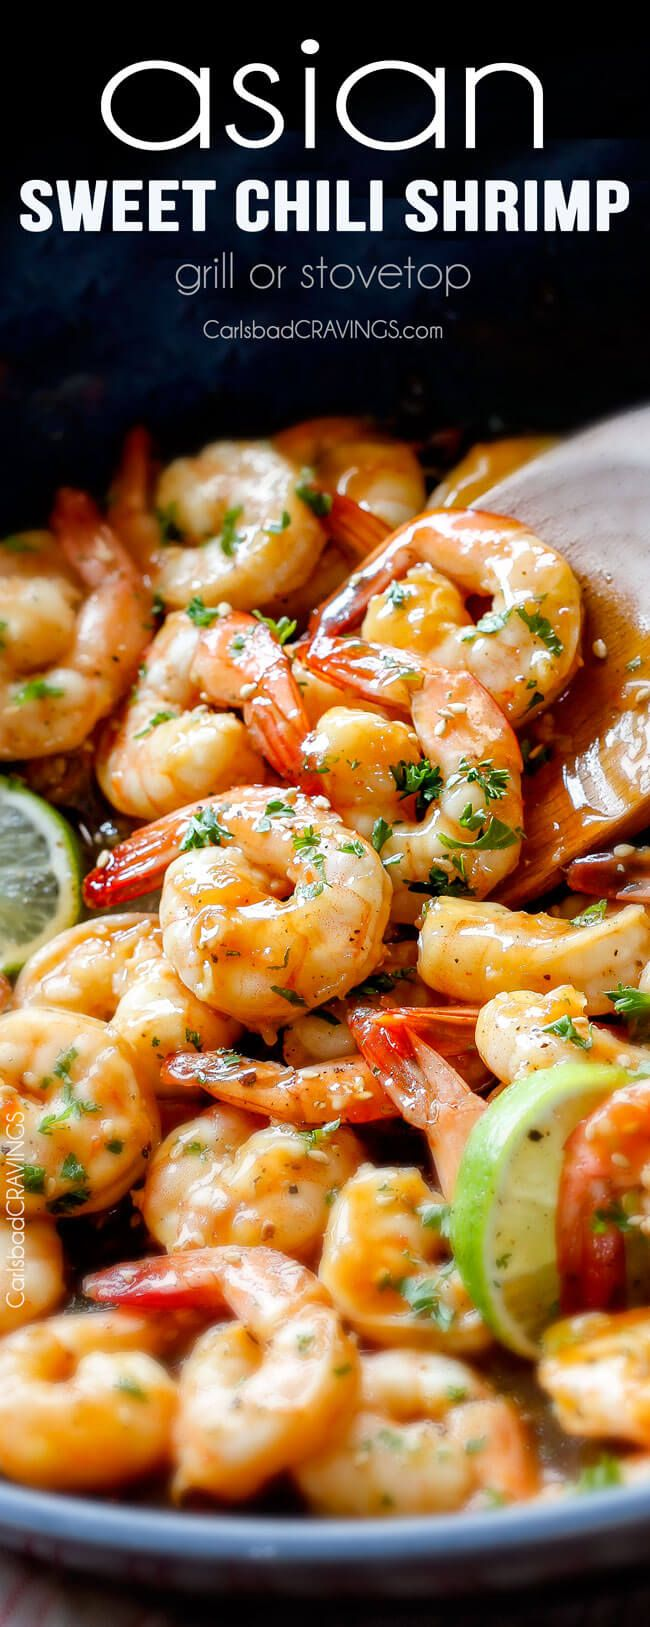 quick and easy Asian Sweet Chili Shrimp (grill or stovetop) - this is by far my favorite shrimp recipe! The tangy sweet heat sauce is incredible and its SO easy! 10 minute prep, 5 minutes to cook!